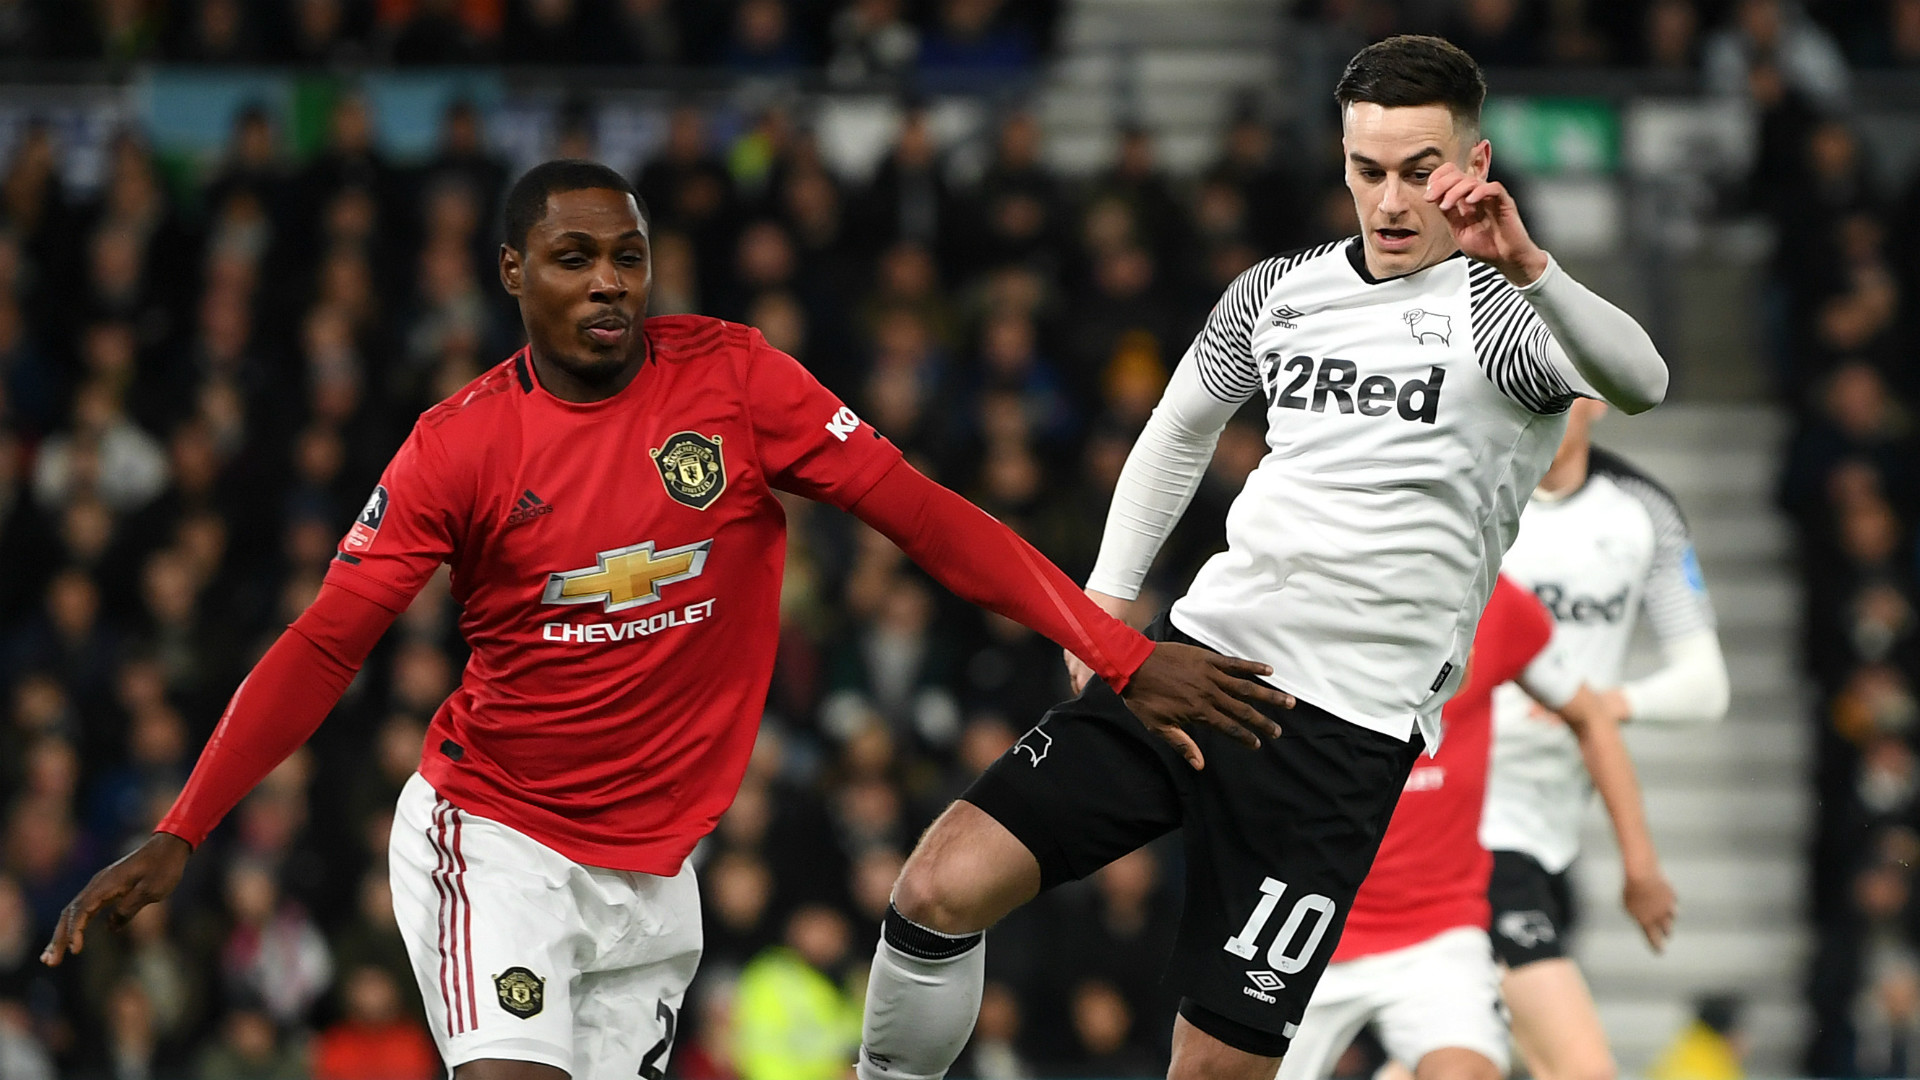 Man Utd striker Ighalo faces uncertain future